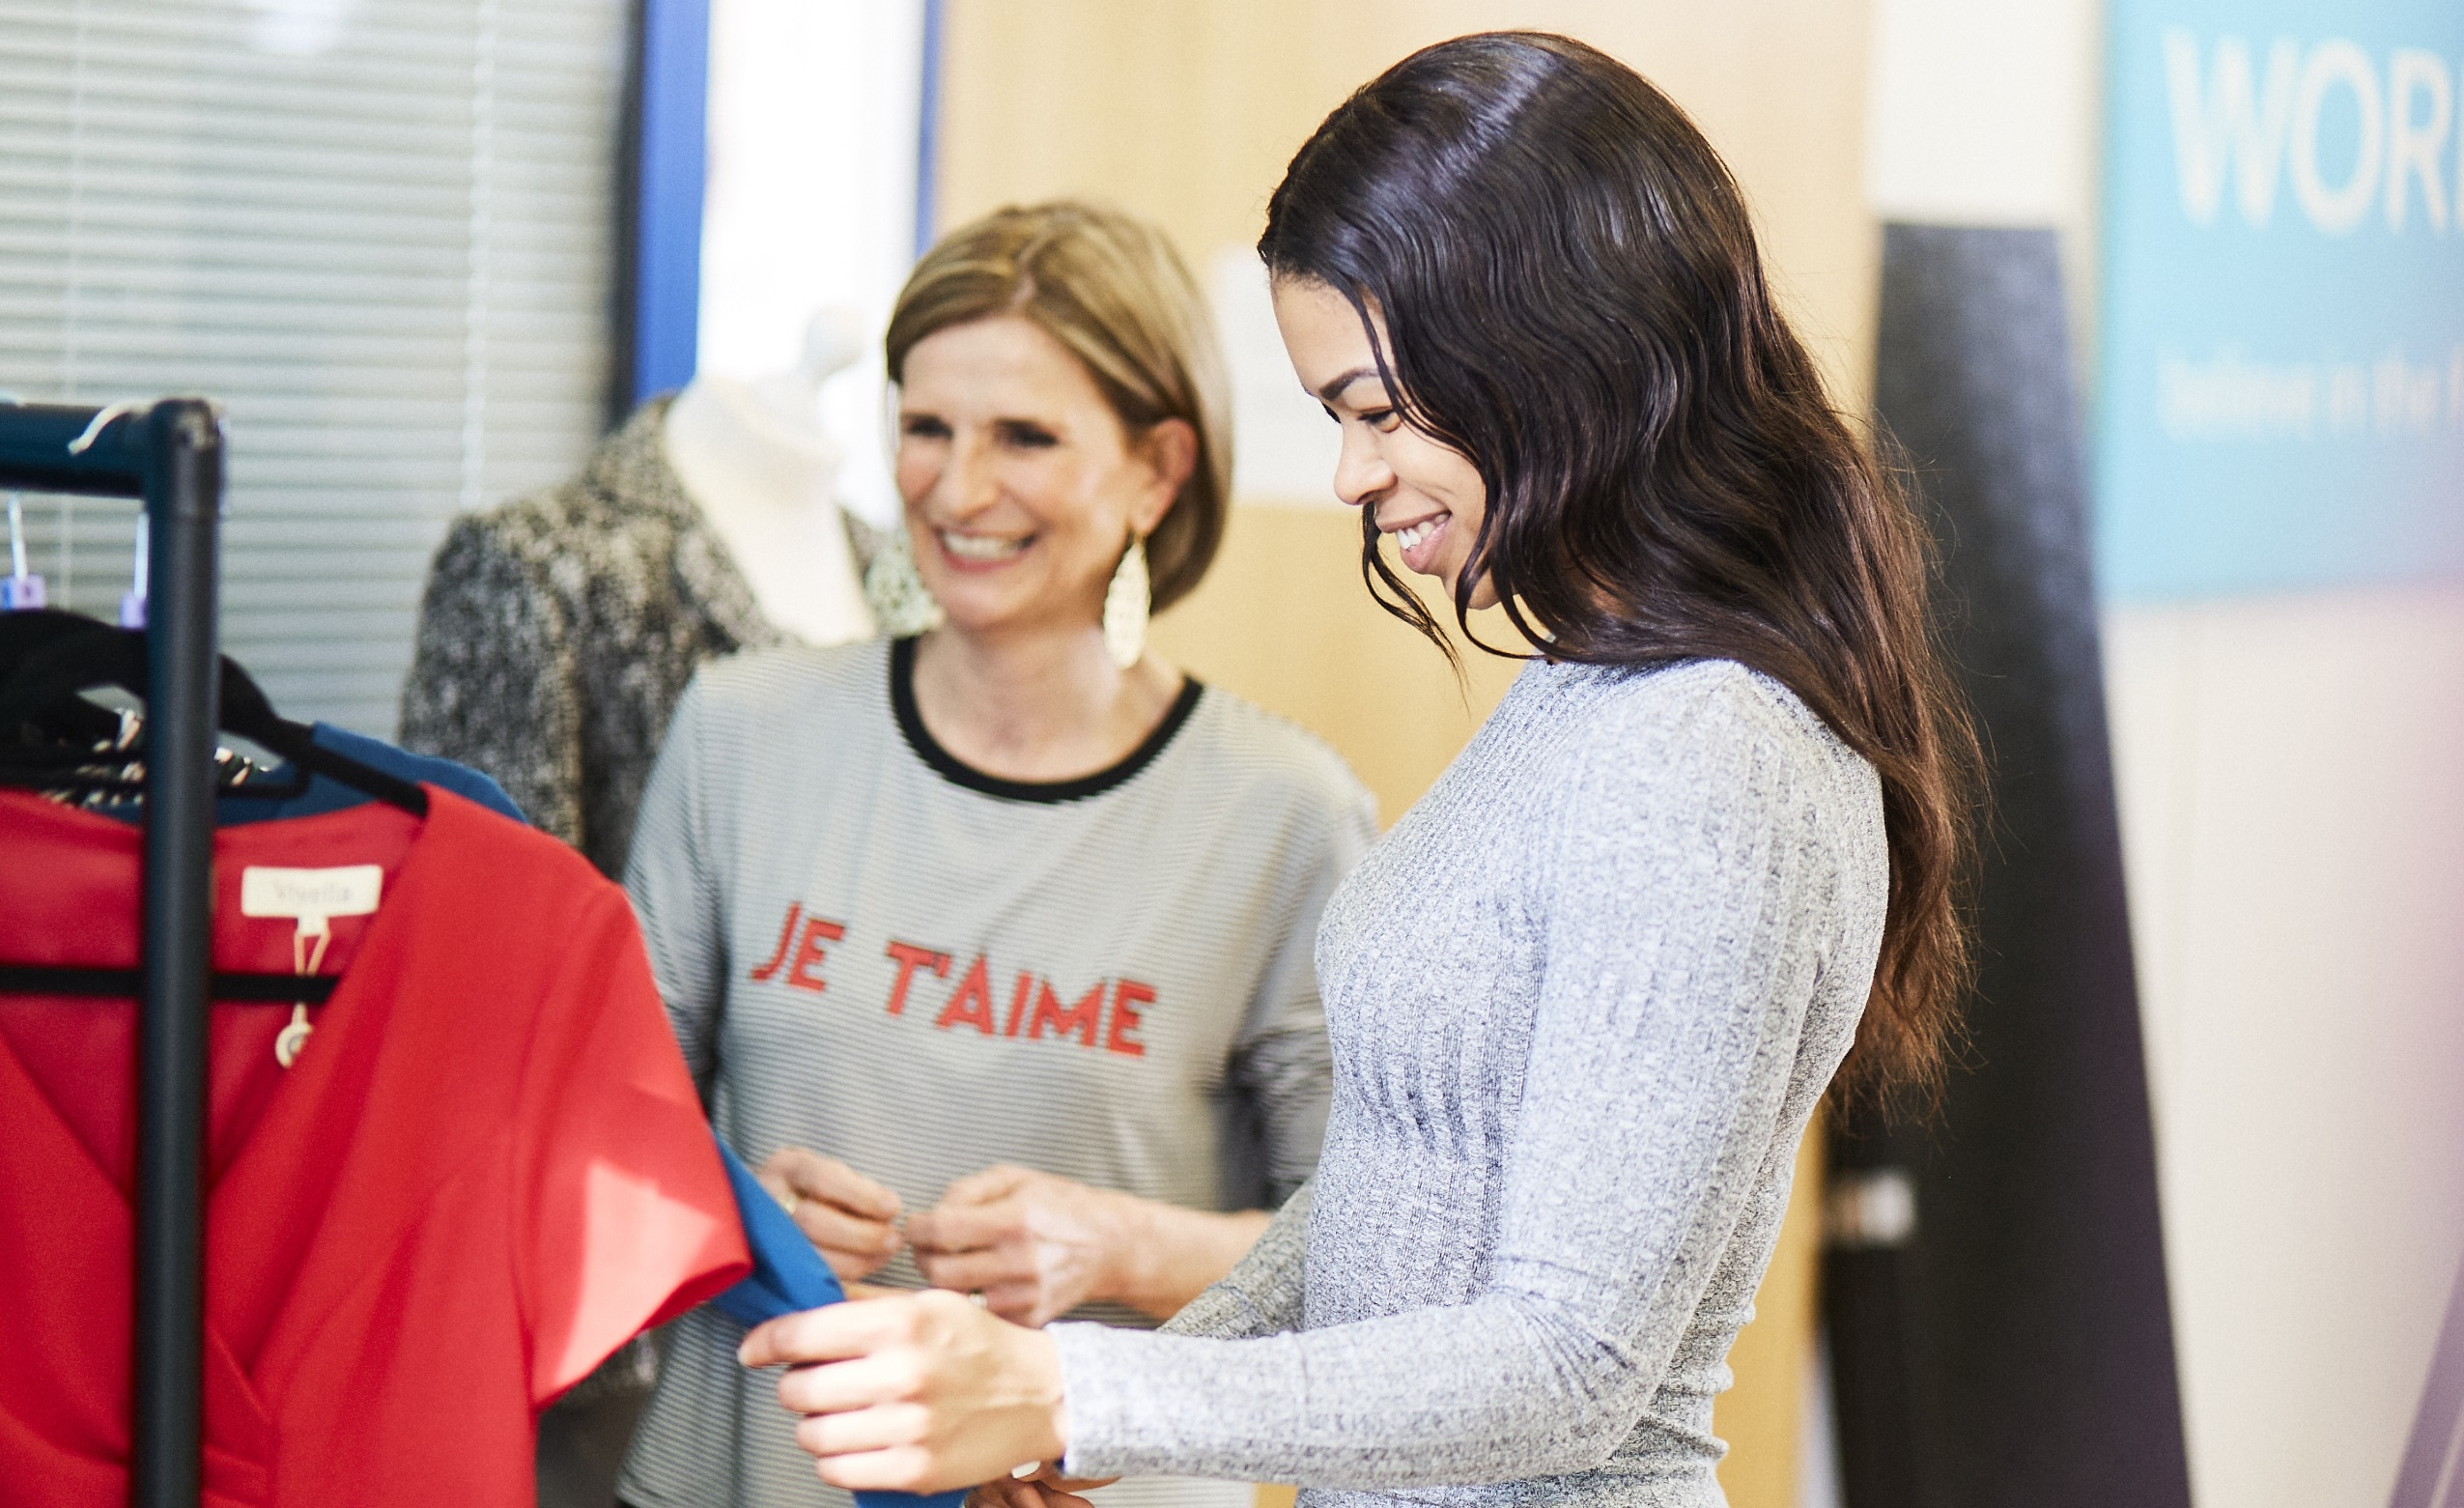 Woman smiling as she looks at clothes at Smart Works